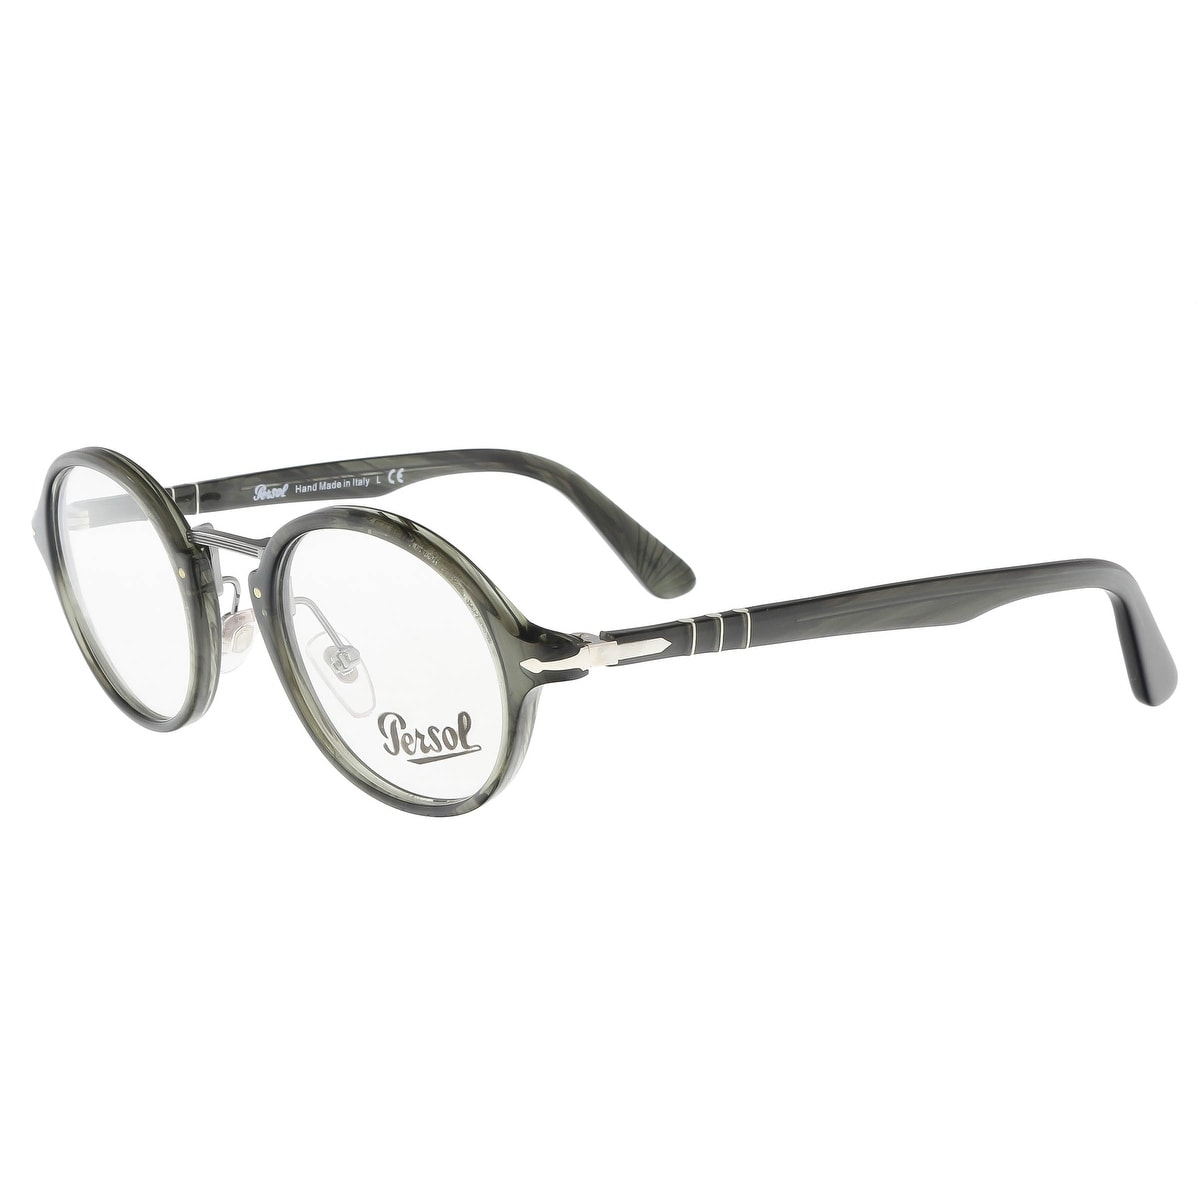 fdf58f82aee7e Shop Persol PO3128V 1020 Grey Round Optical Frames - 46-22-145 - Free  Shipping Today - Overstock - 20773515